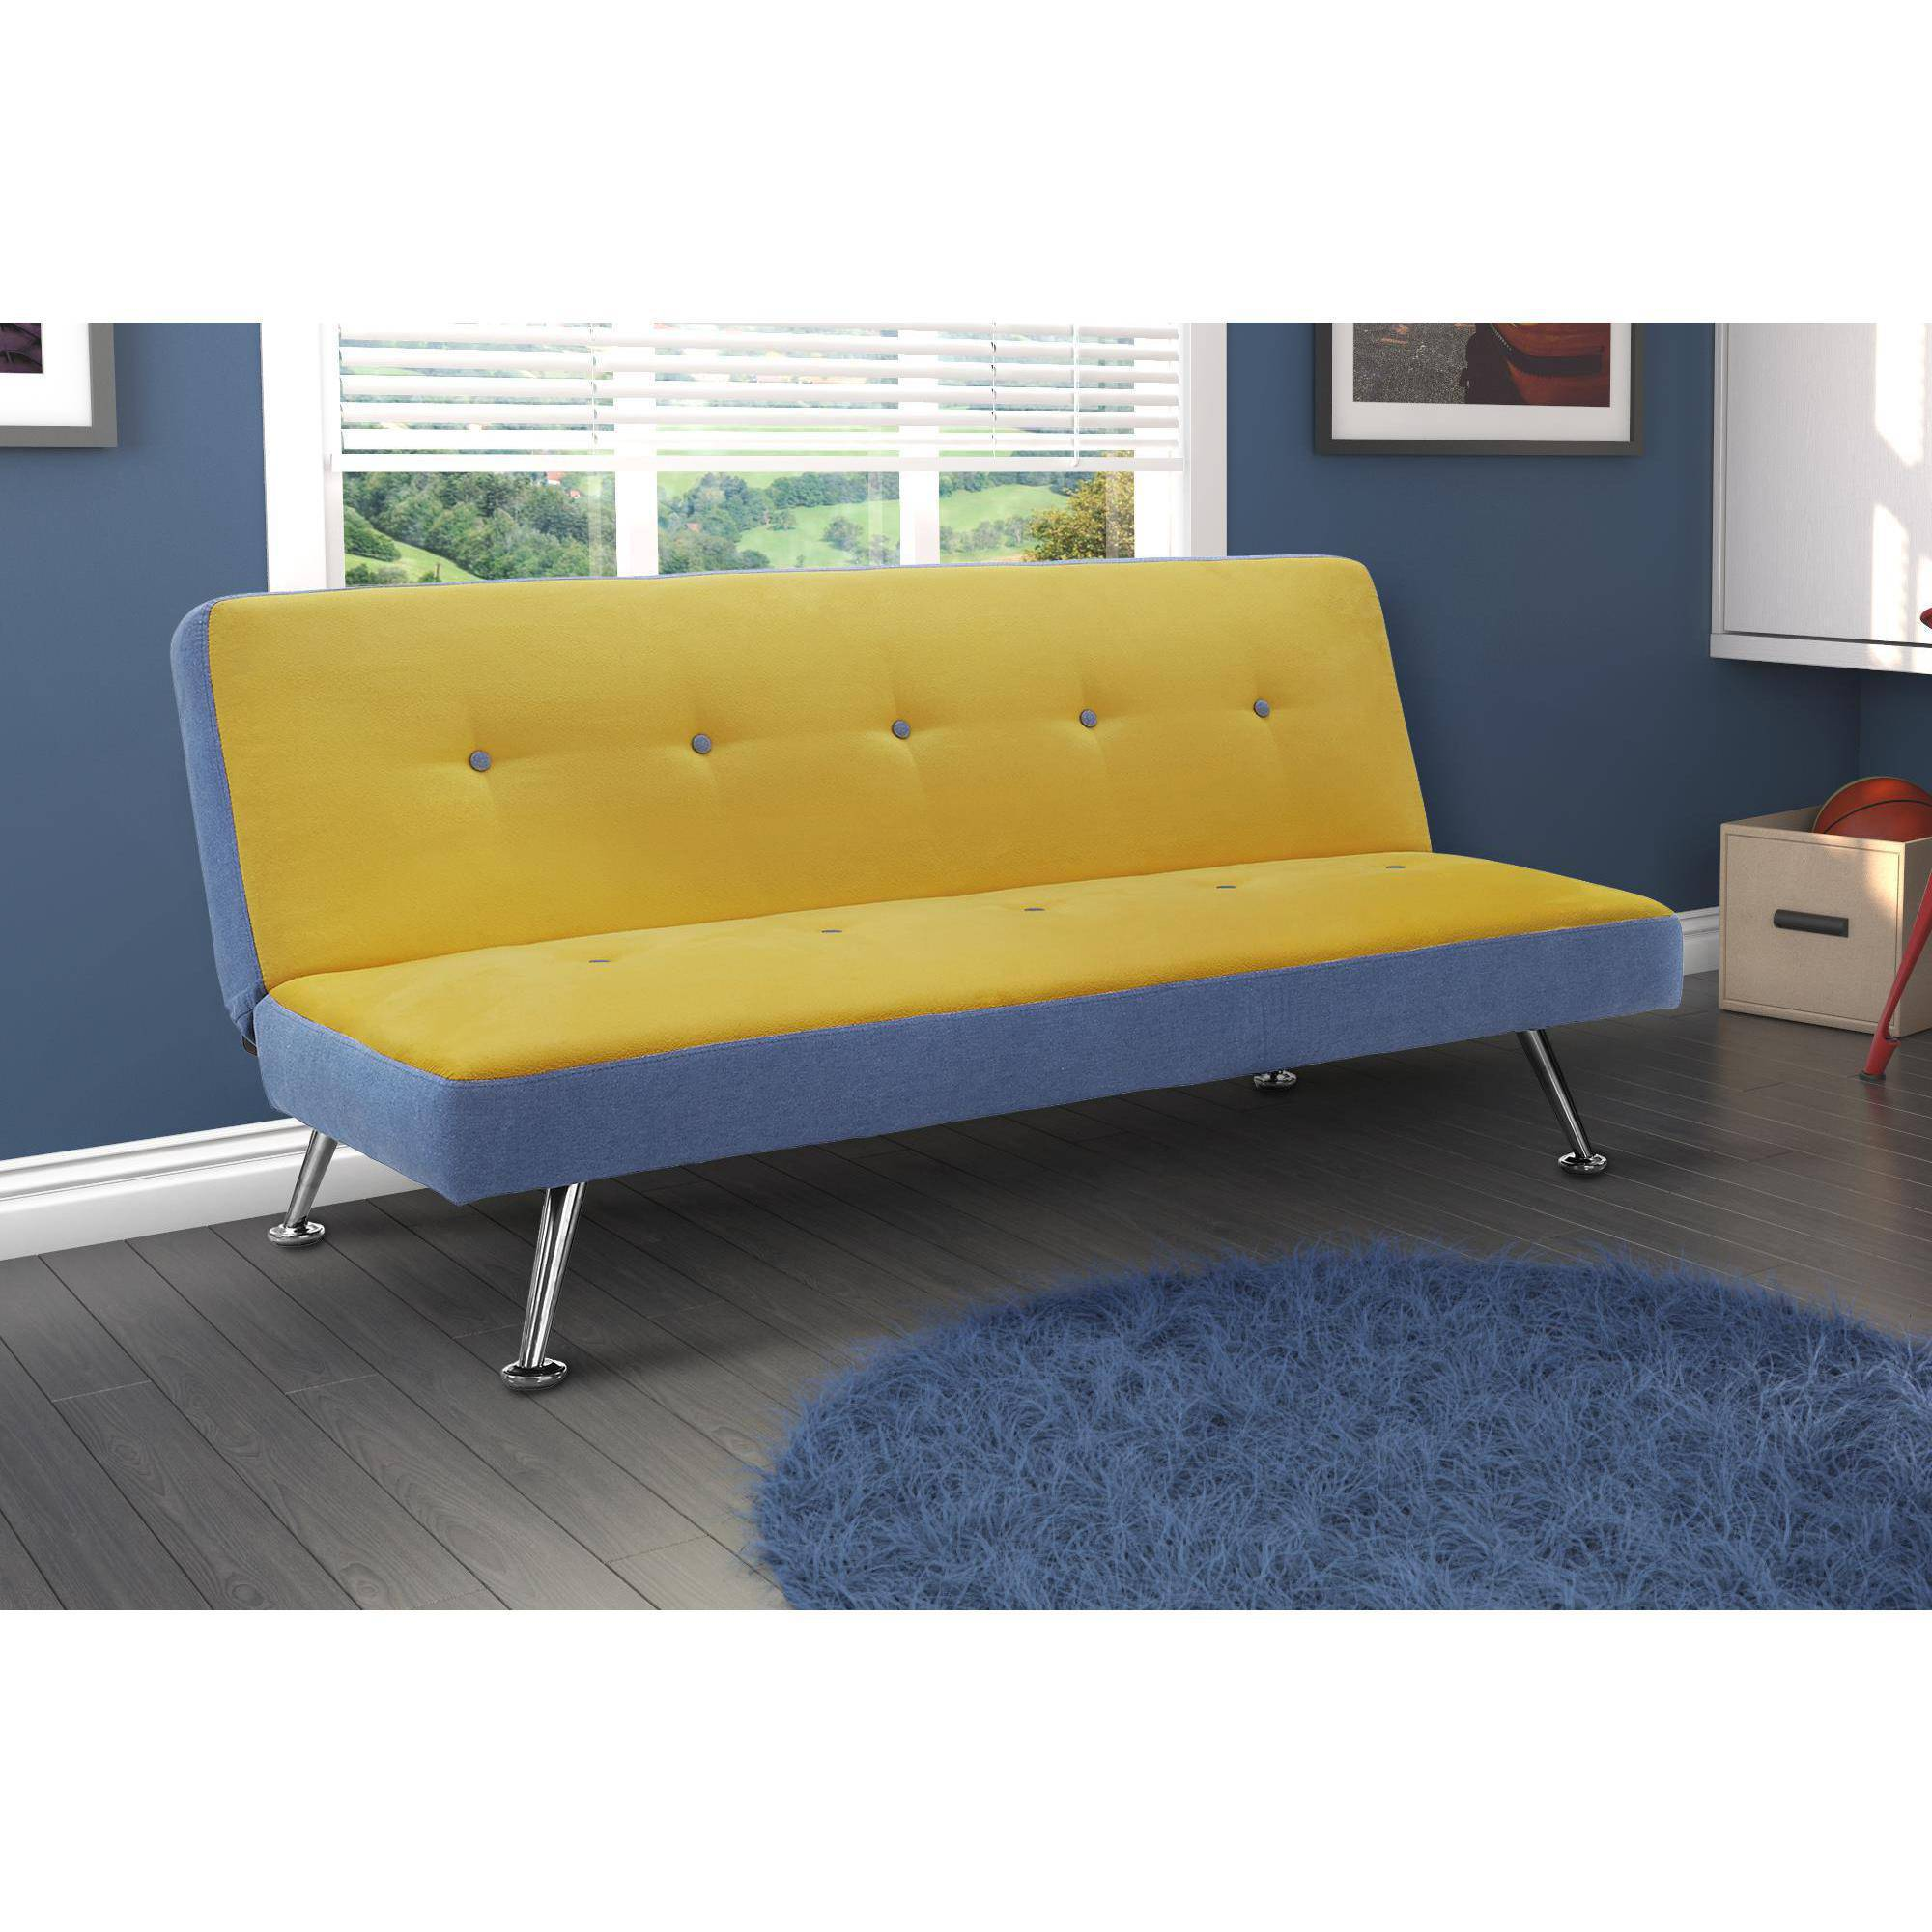 sof pdp jpeg pan futon for futons cover denim sofa lr couch delancey